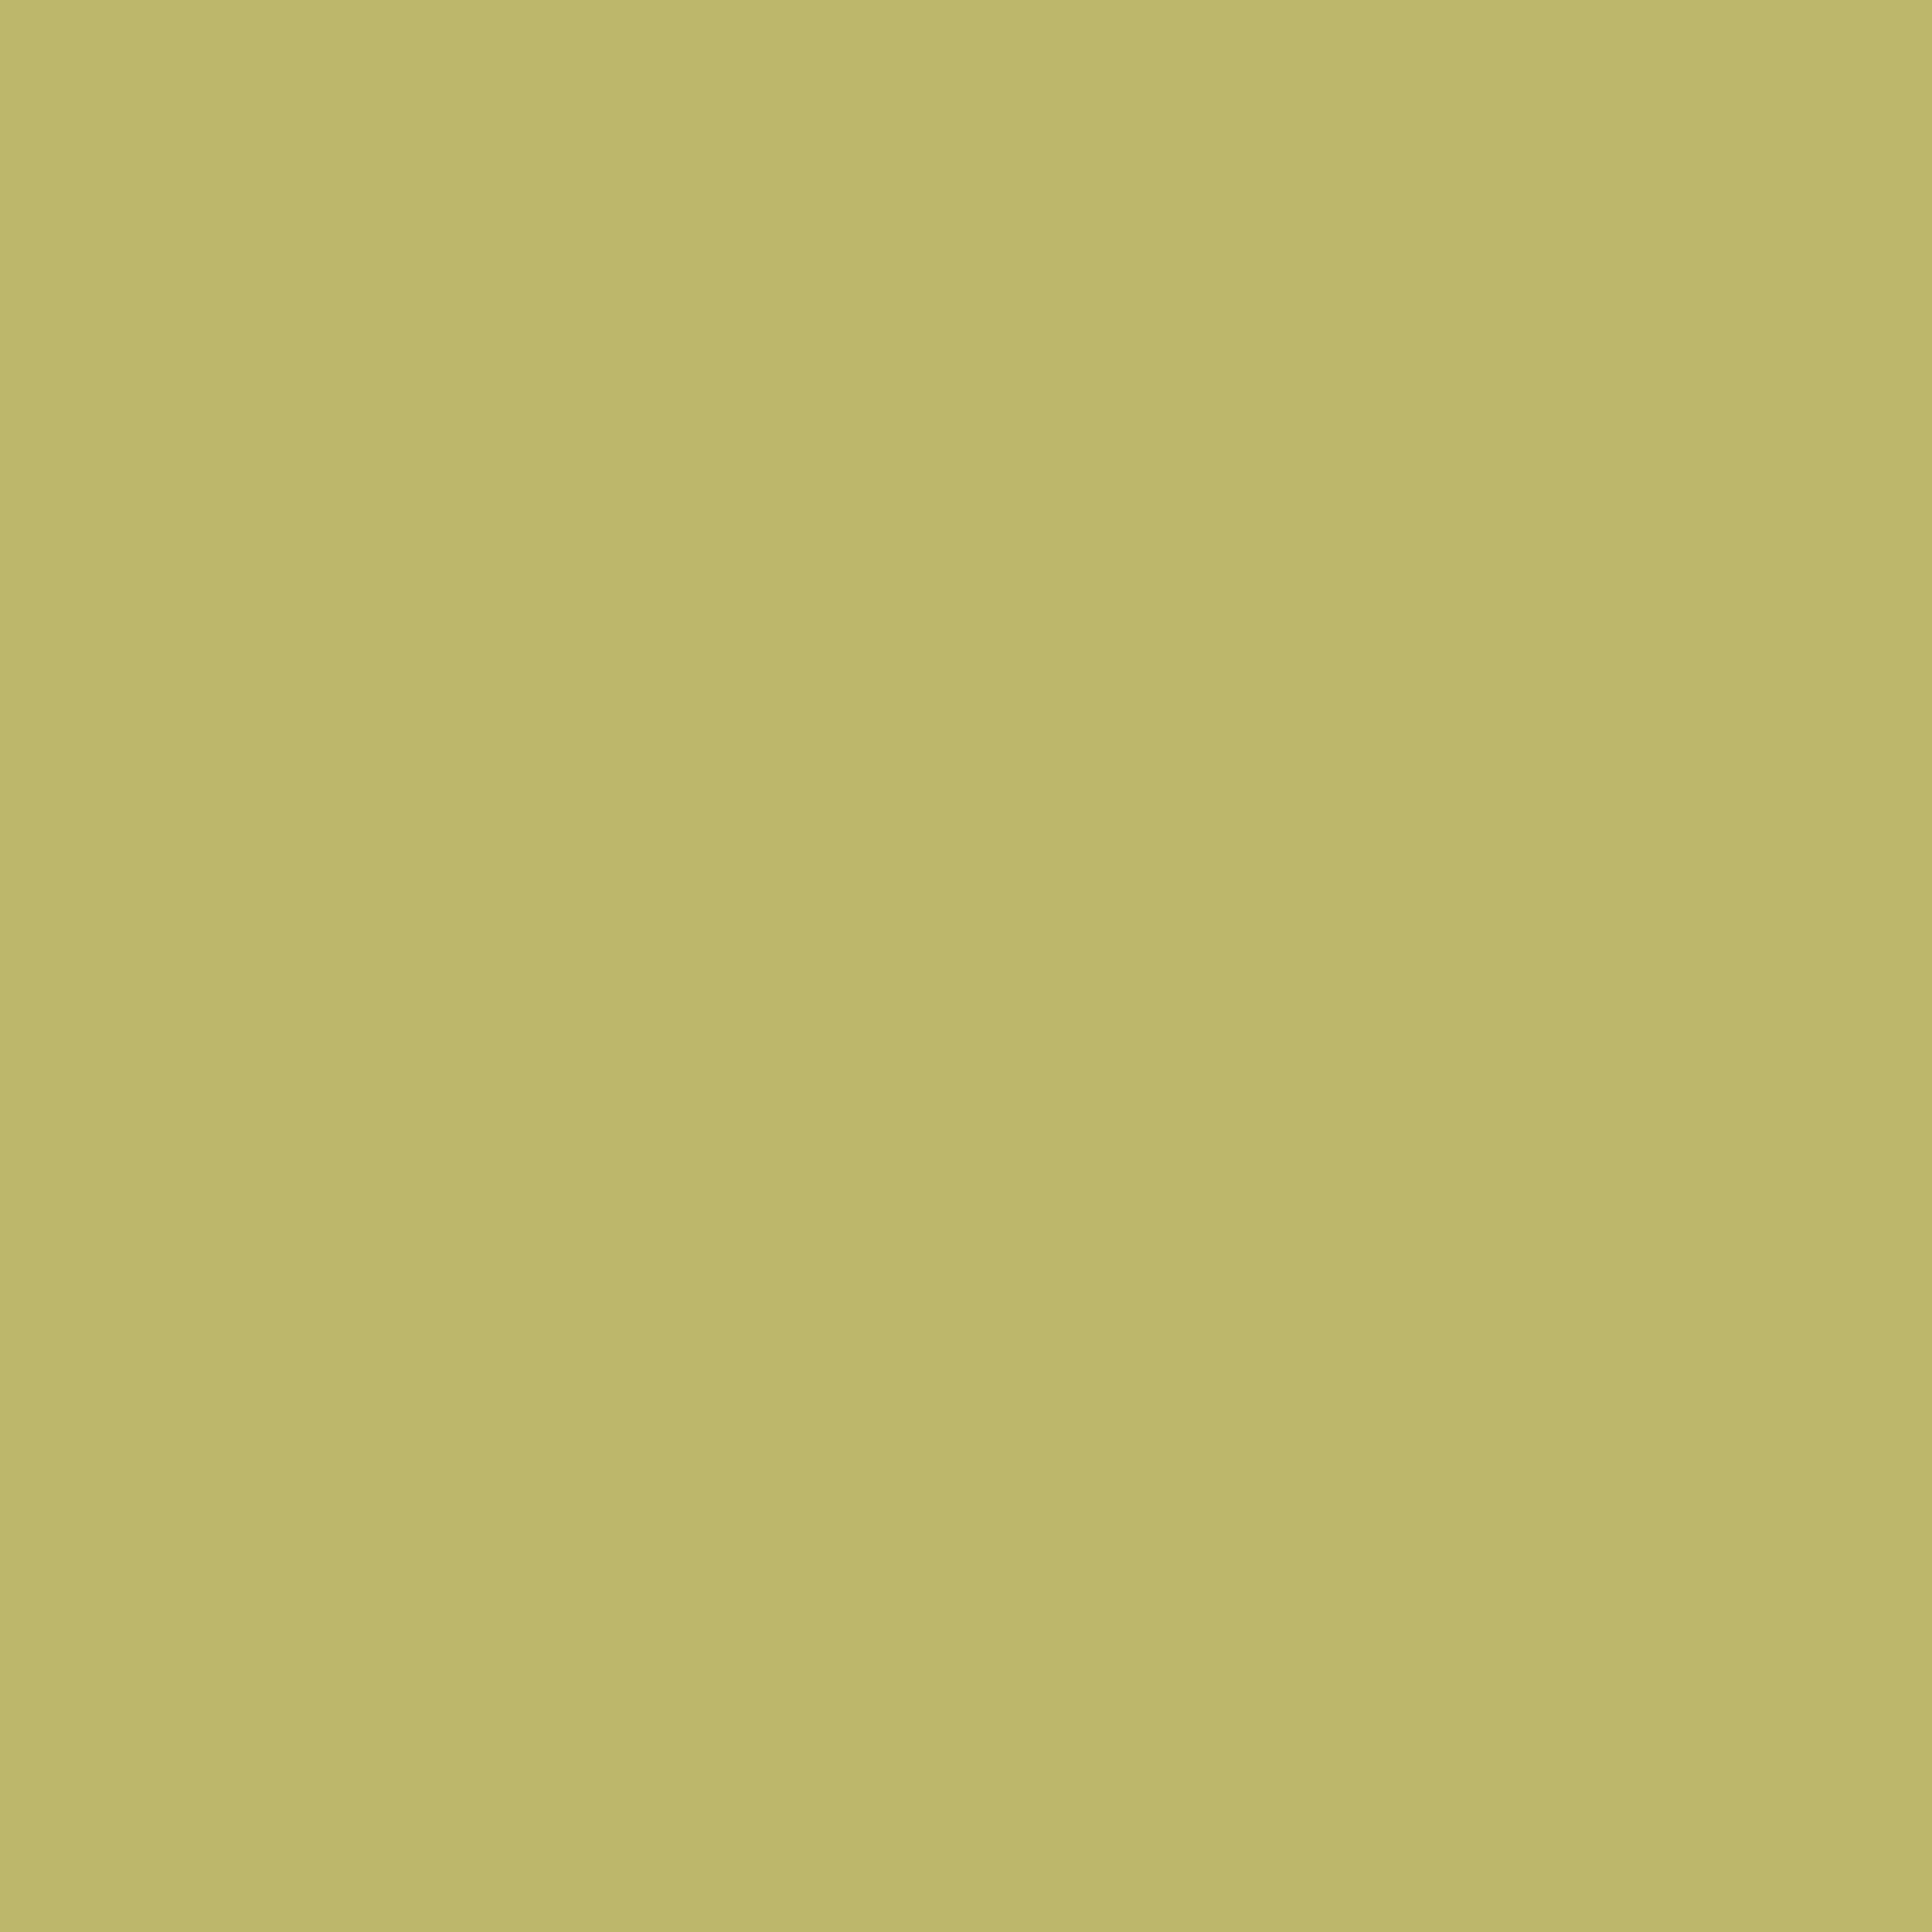 2048x2048 Dark Khaki Solid Color Background